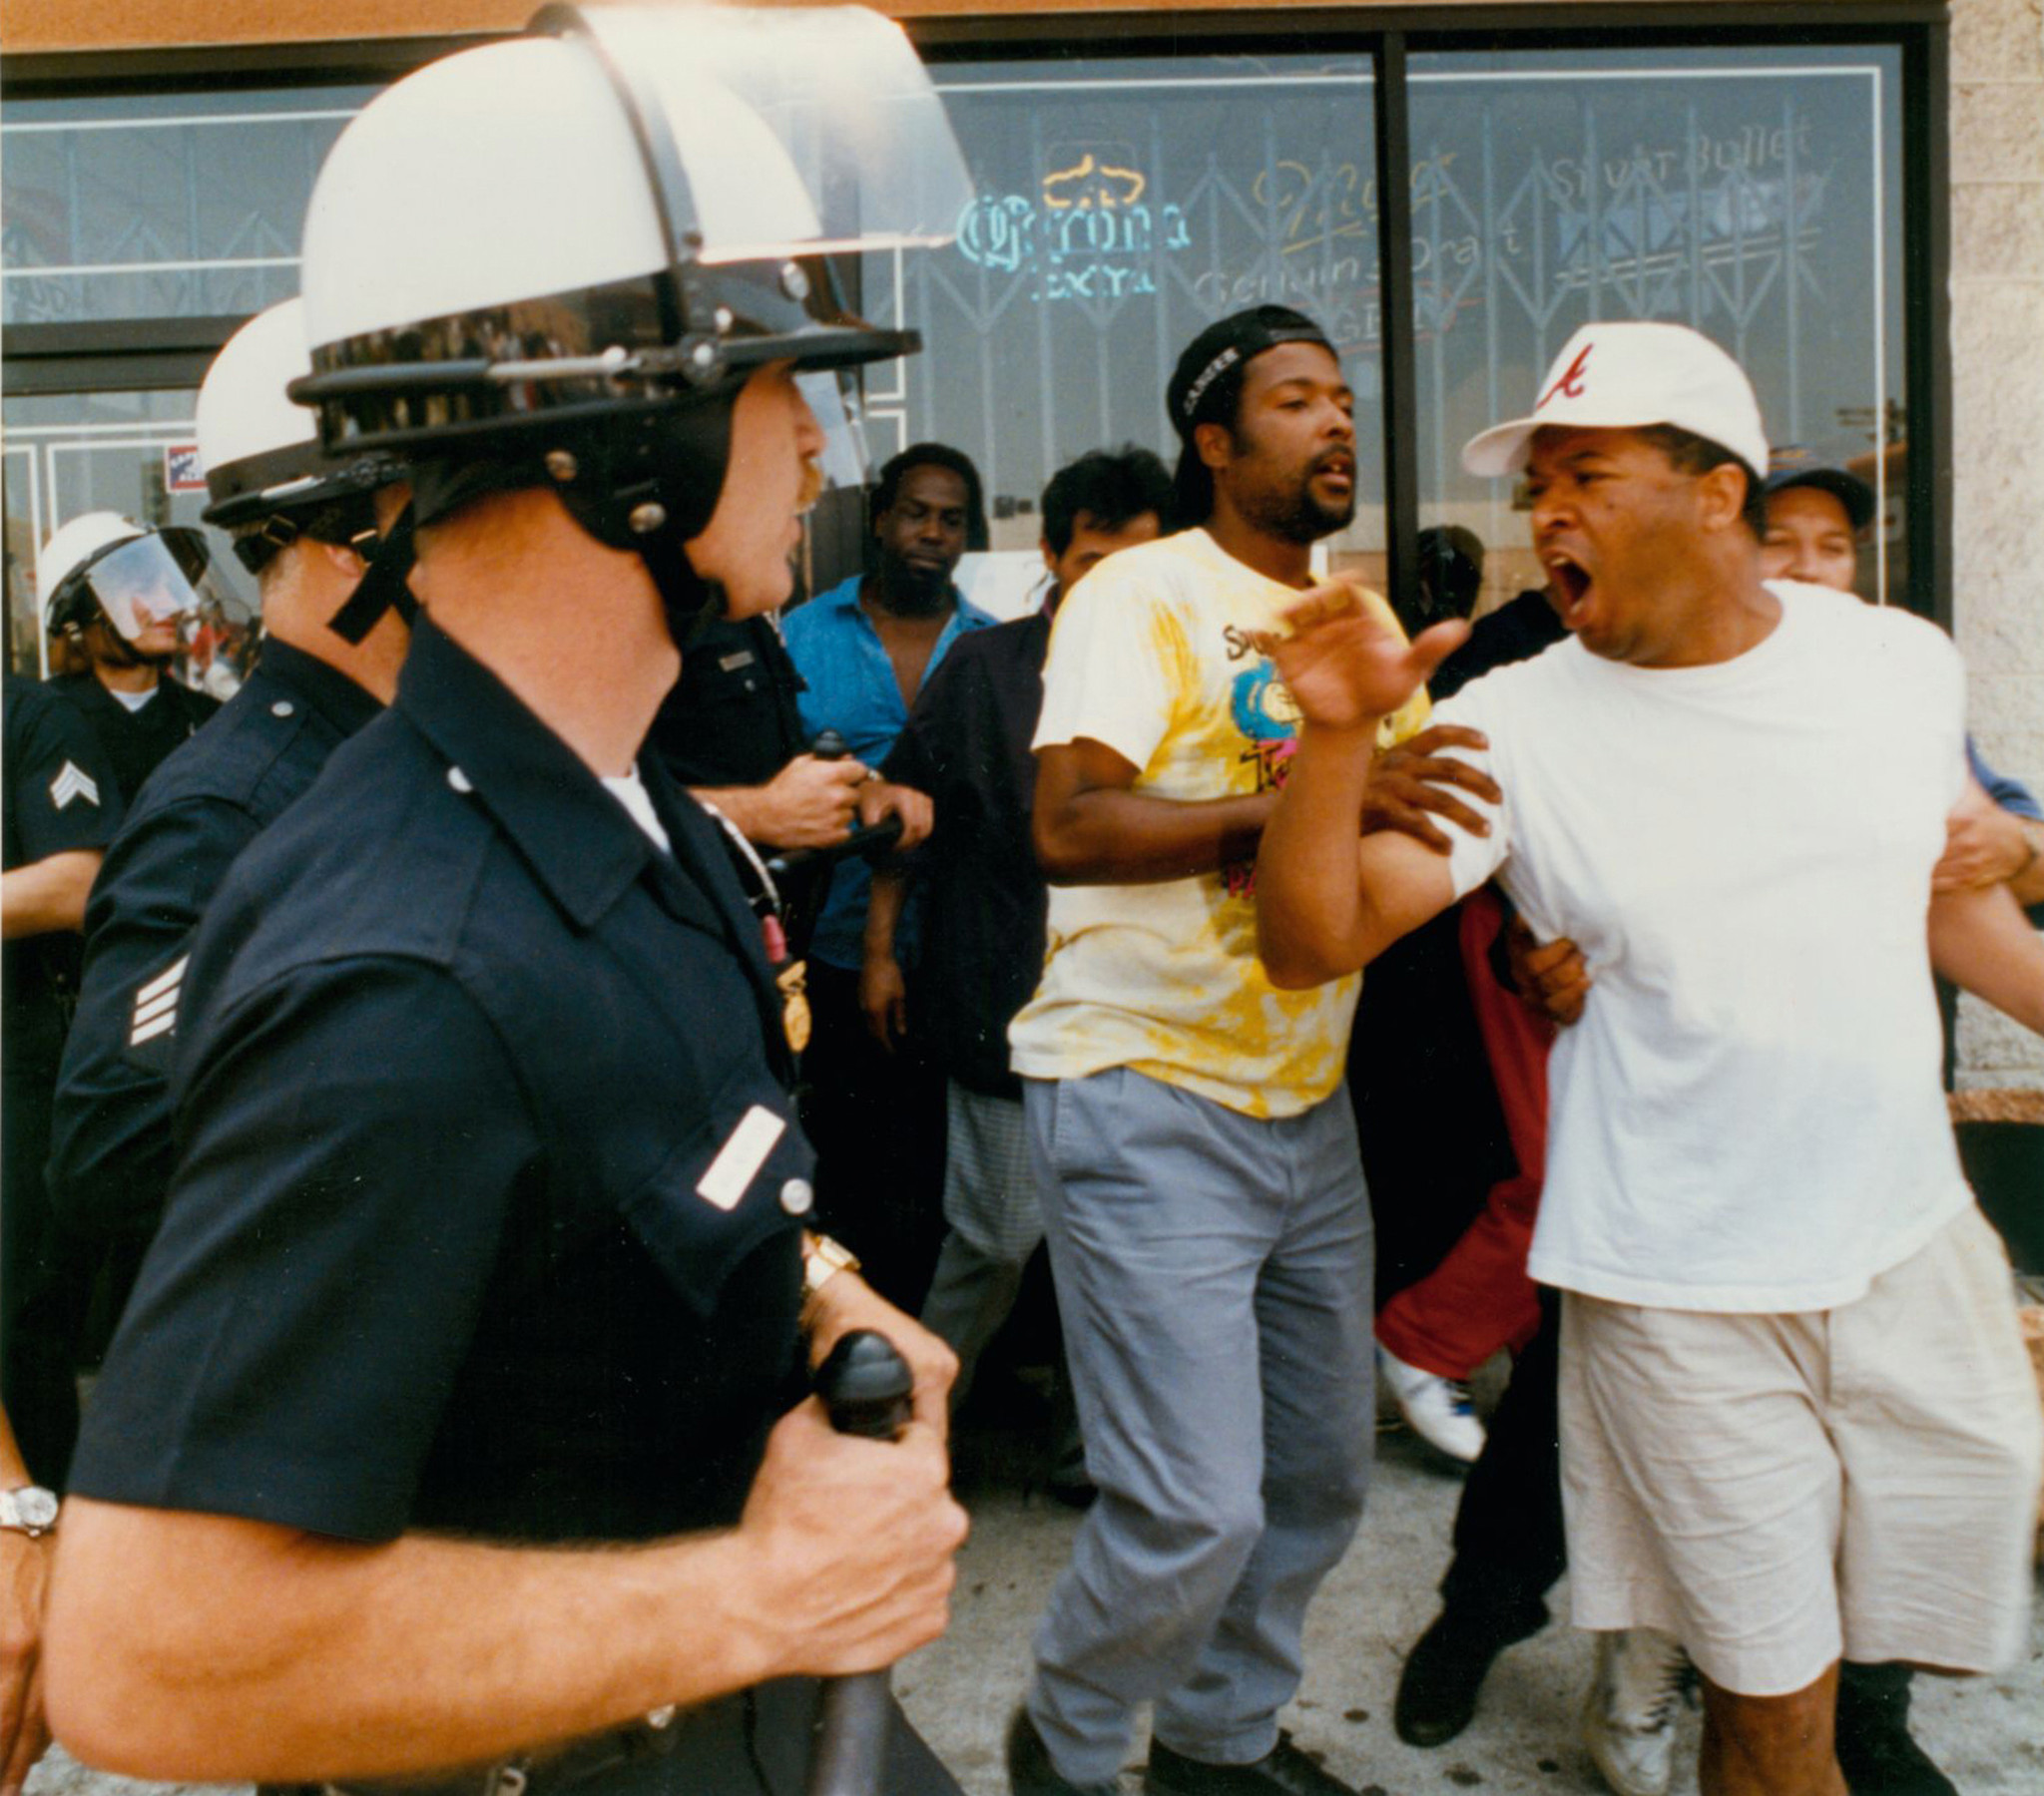 An argument between police and civilians preceding a rock- and brick-throwing incident at the corner of Vermont Avenue and 1st Street in Los Angeles on April 30, 1992.